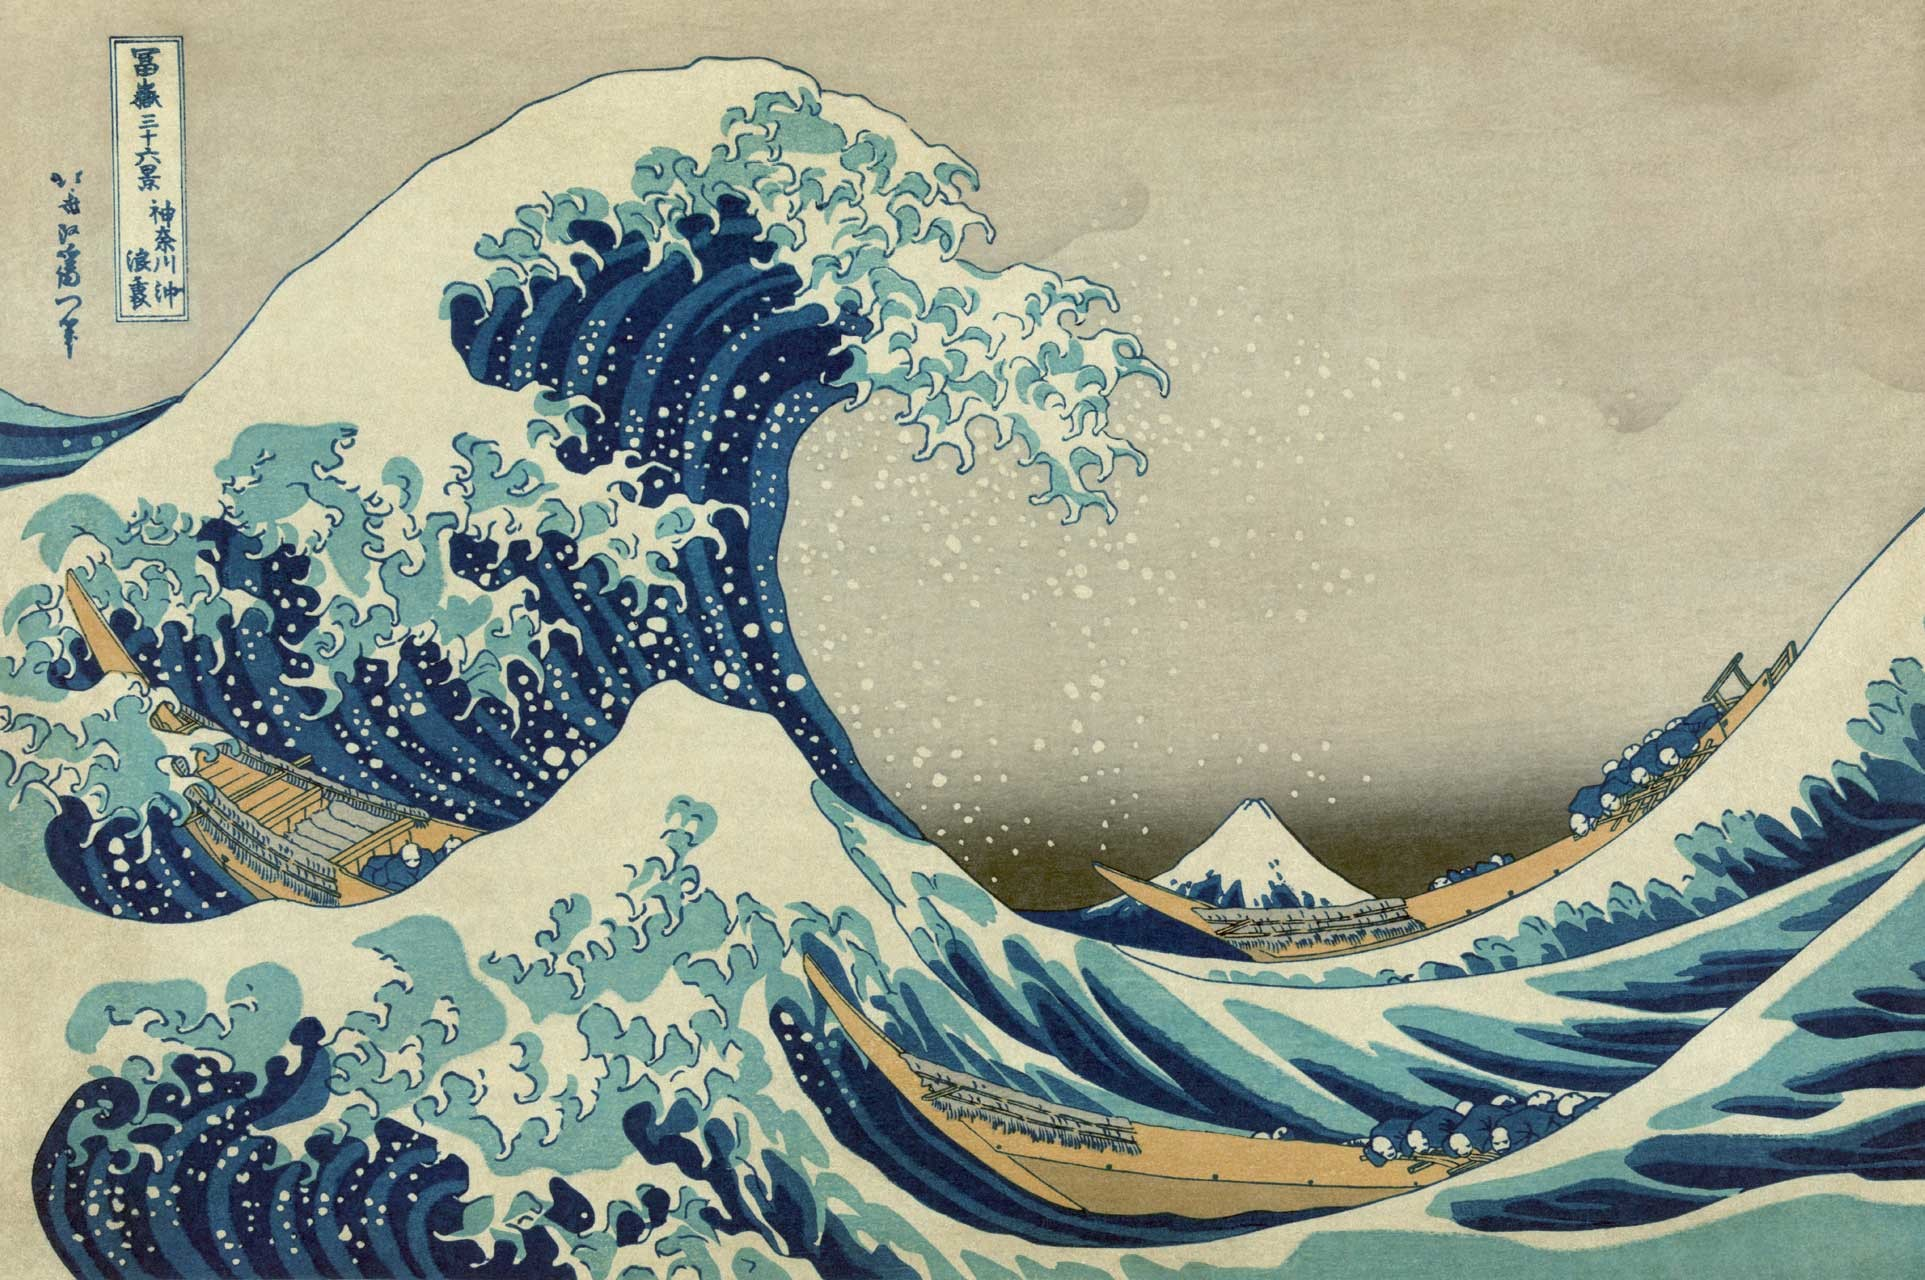 Katsushika-Hokusai-The-Great-Wave-off-Kanagawa | HD Wallpapers